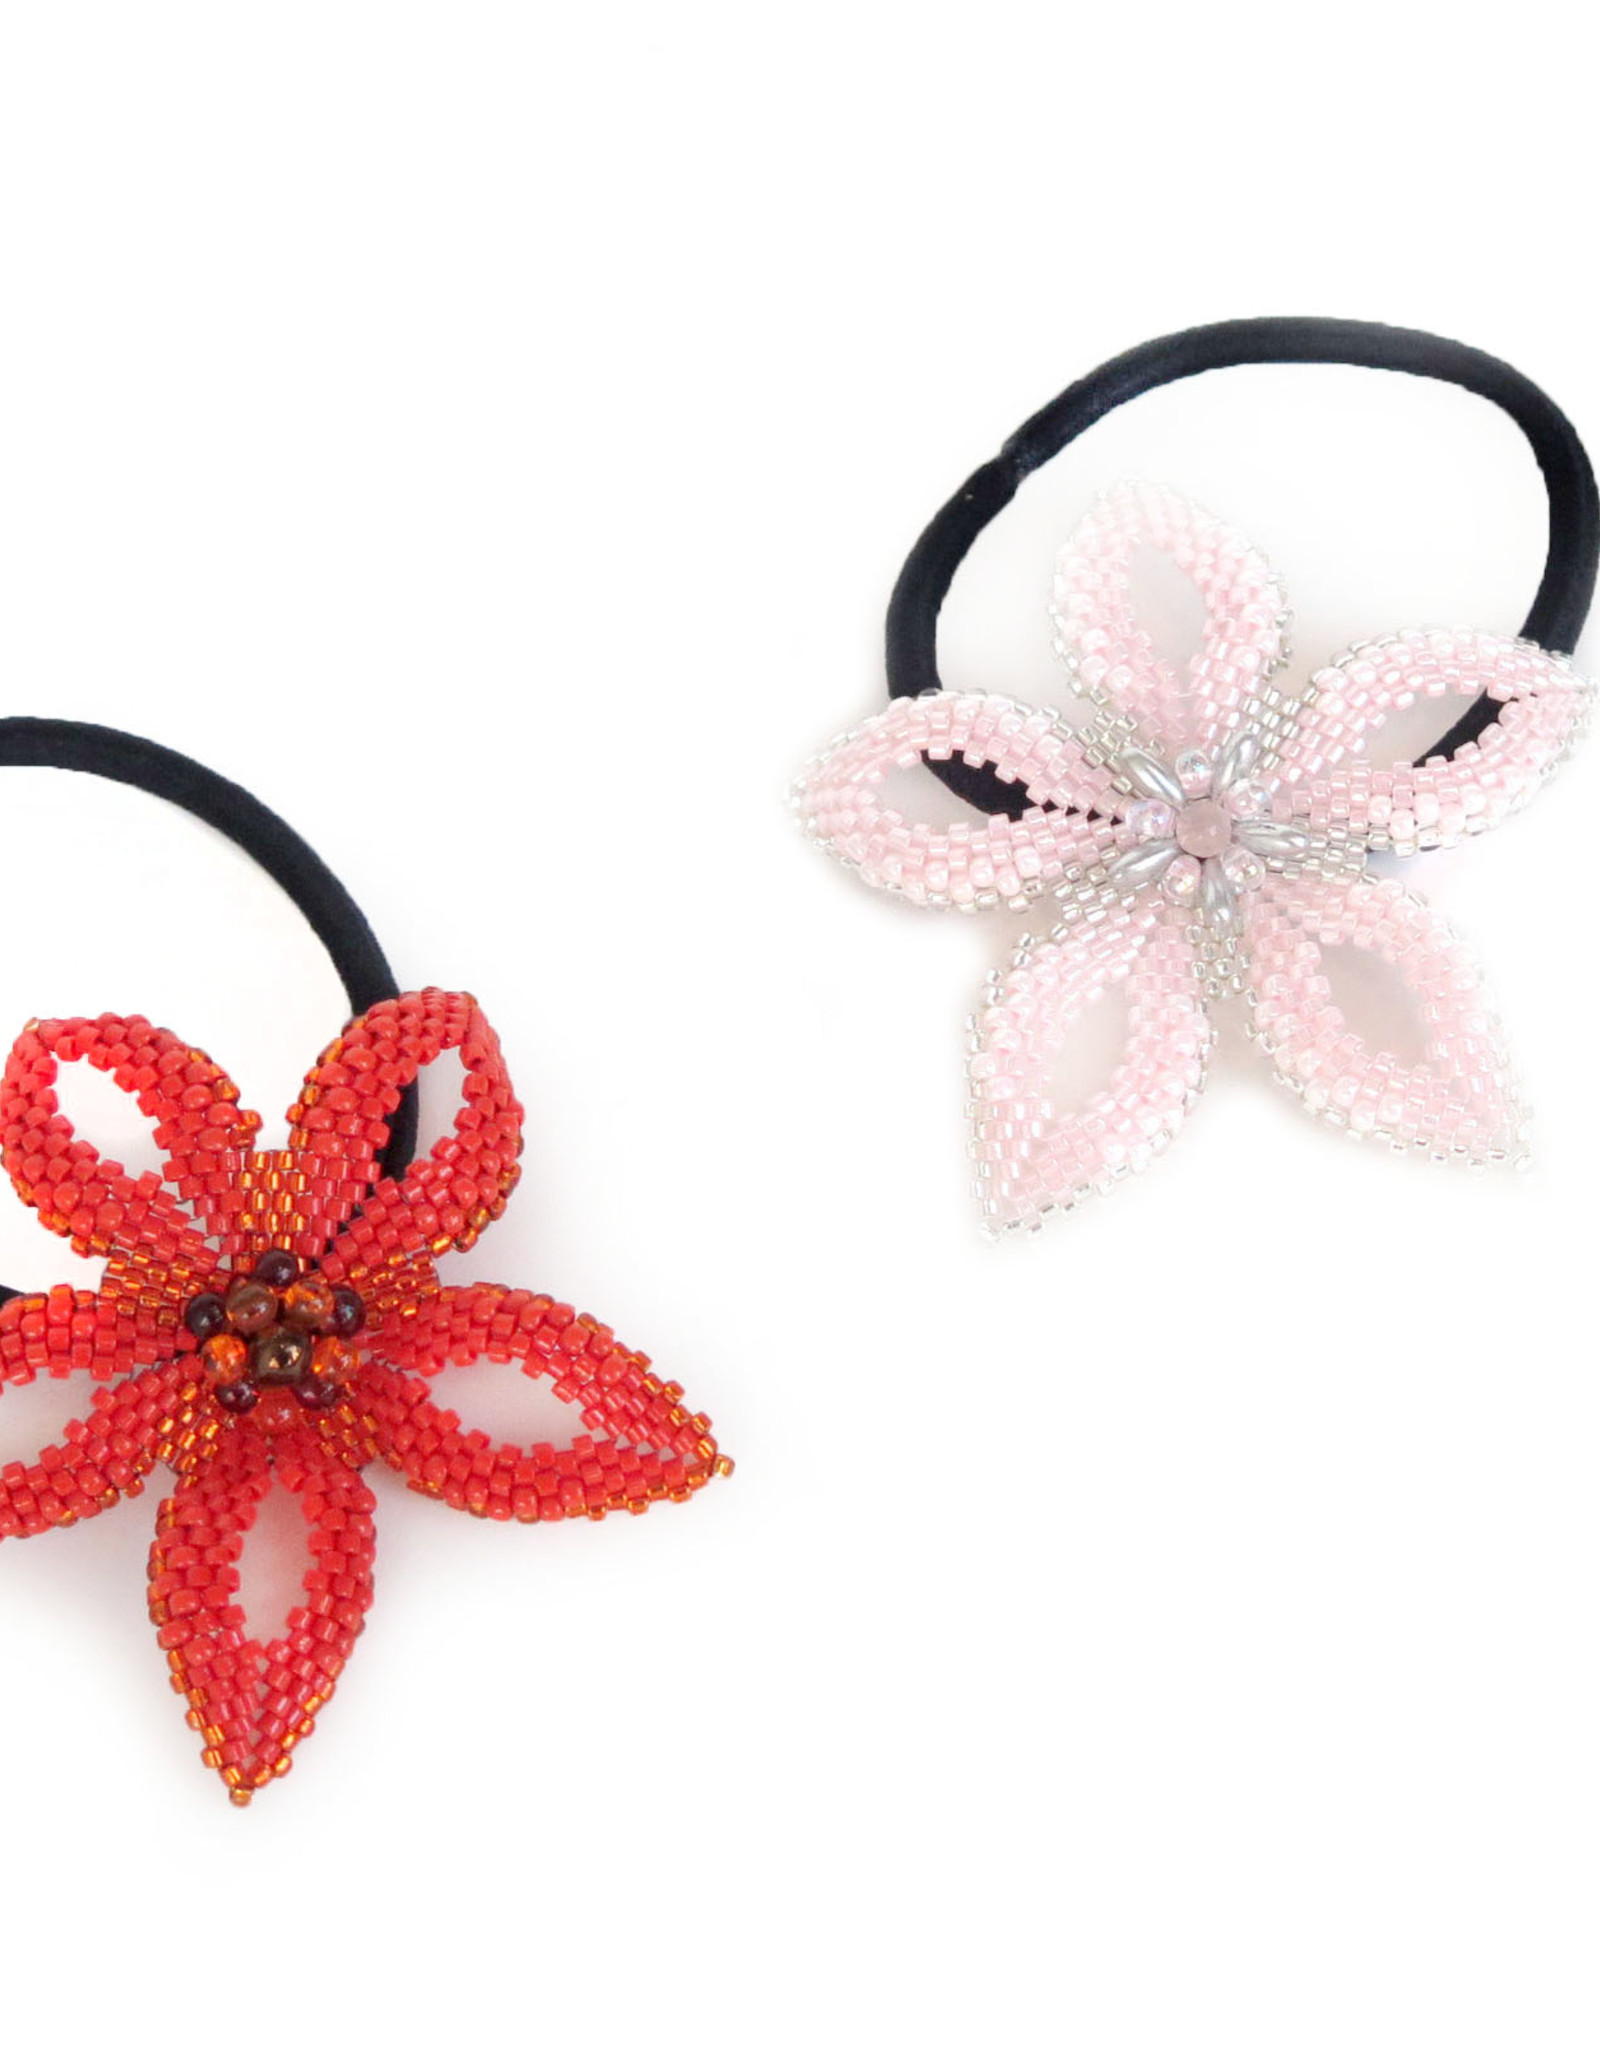 "Knot Thinkers ""Beaded Hair Band"" (pink) by Knot Thinkers"